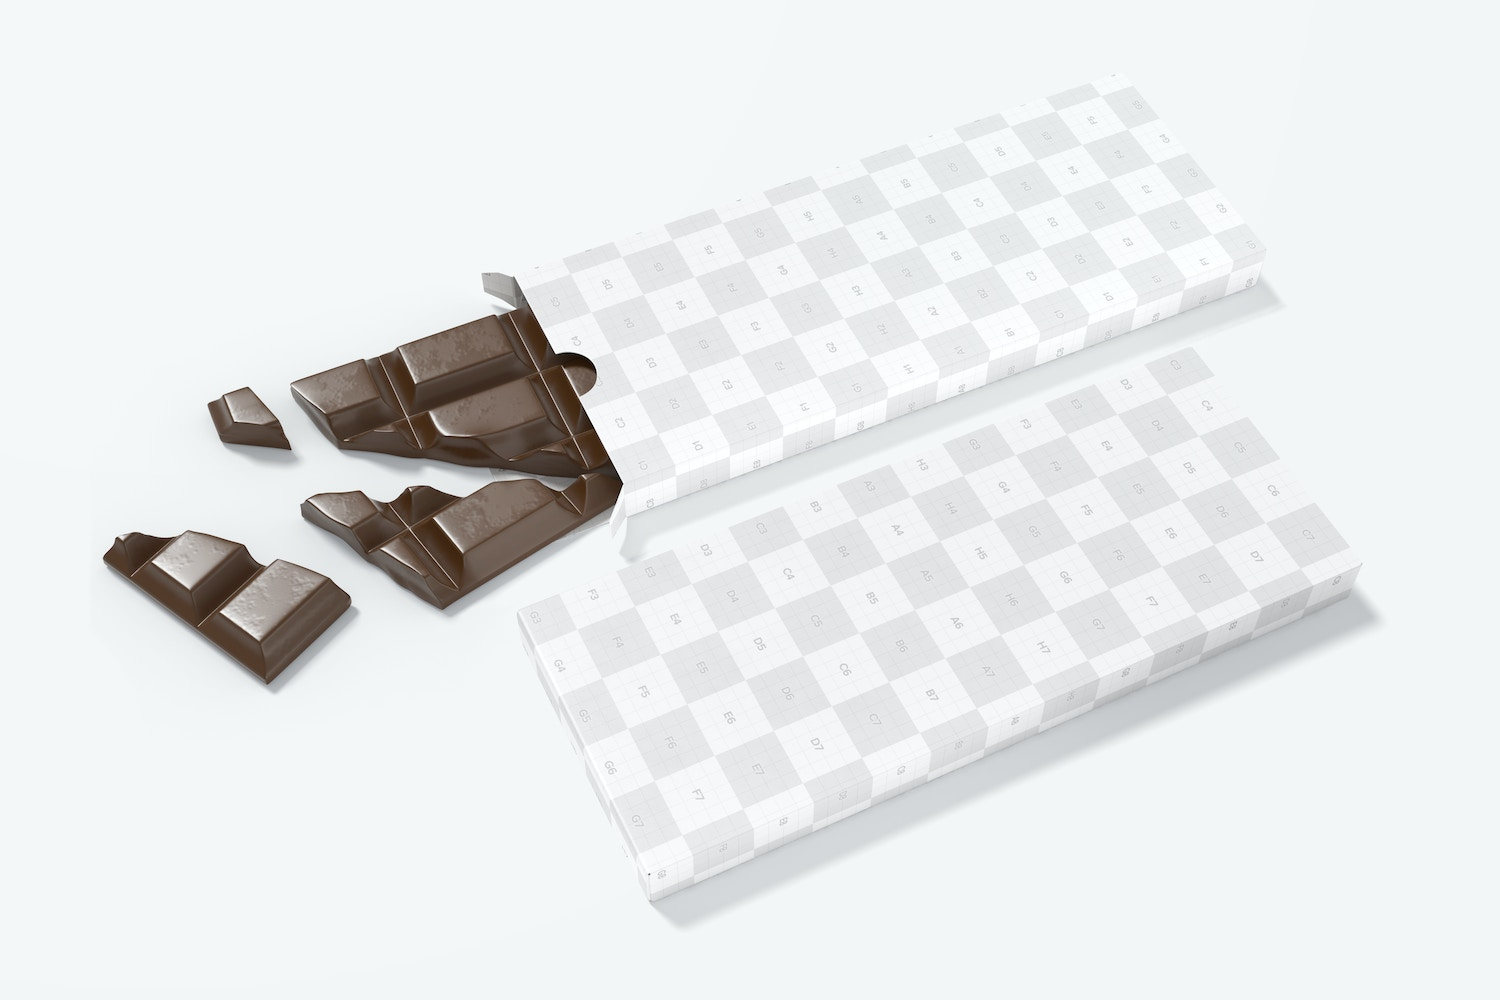 The chocolate bar is very realistic!